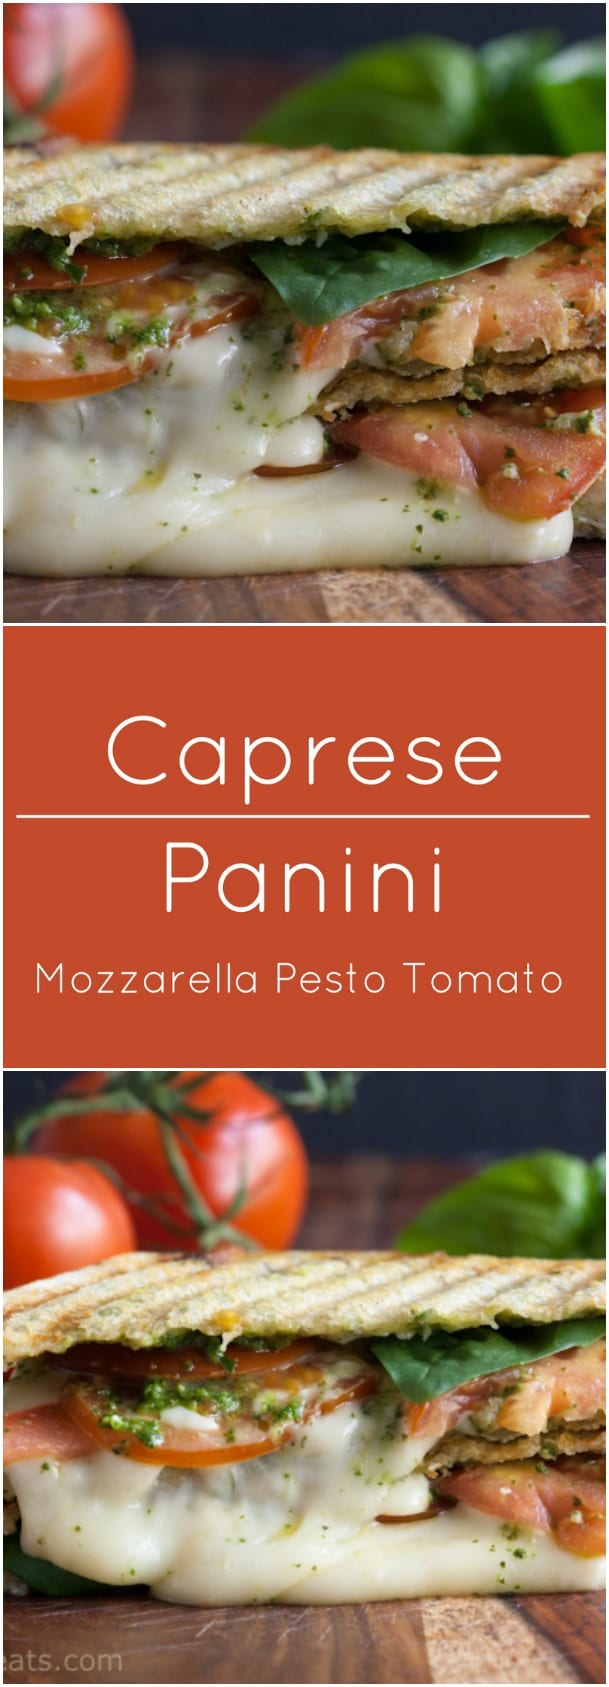 Grilled Caprese Panini with mozarella, pesto and tomatoes.